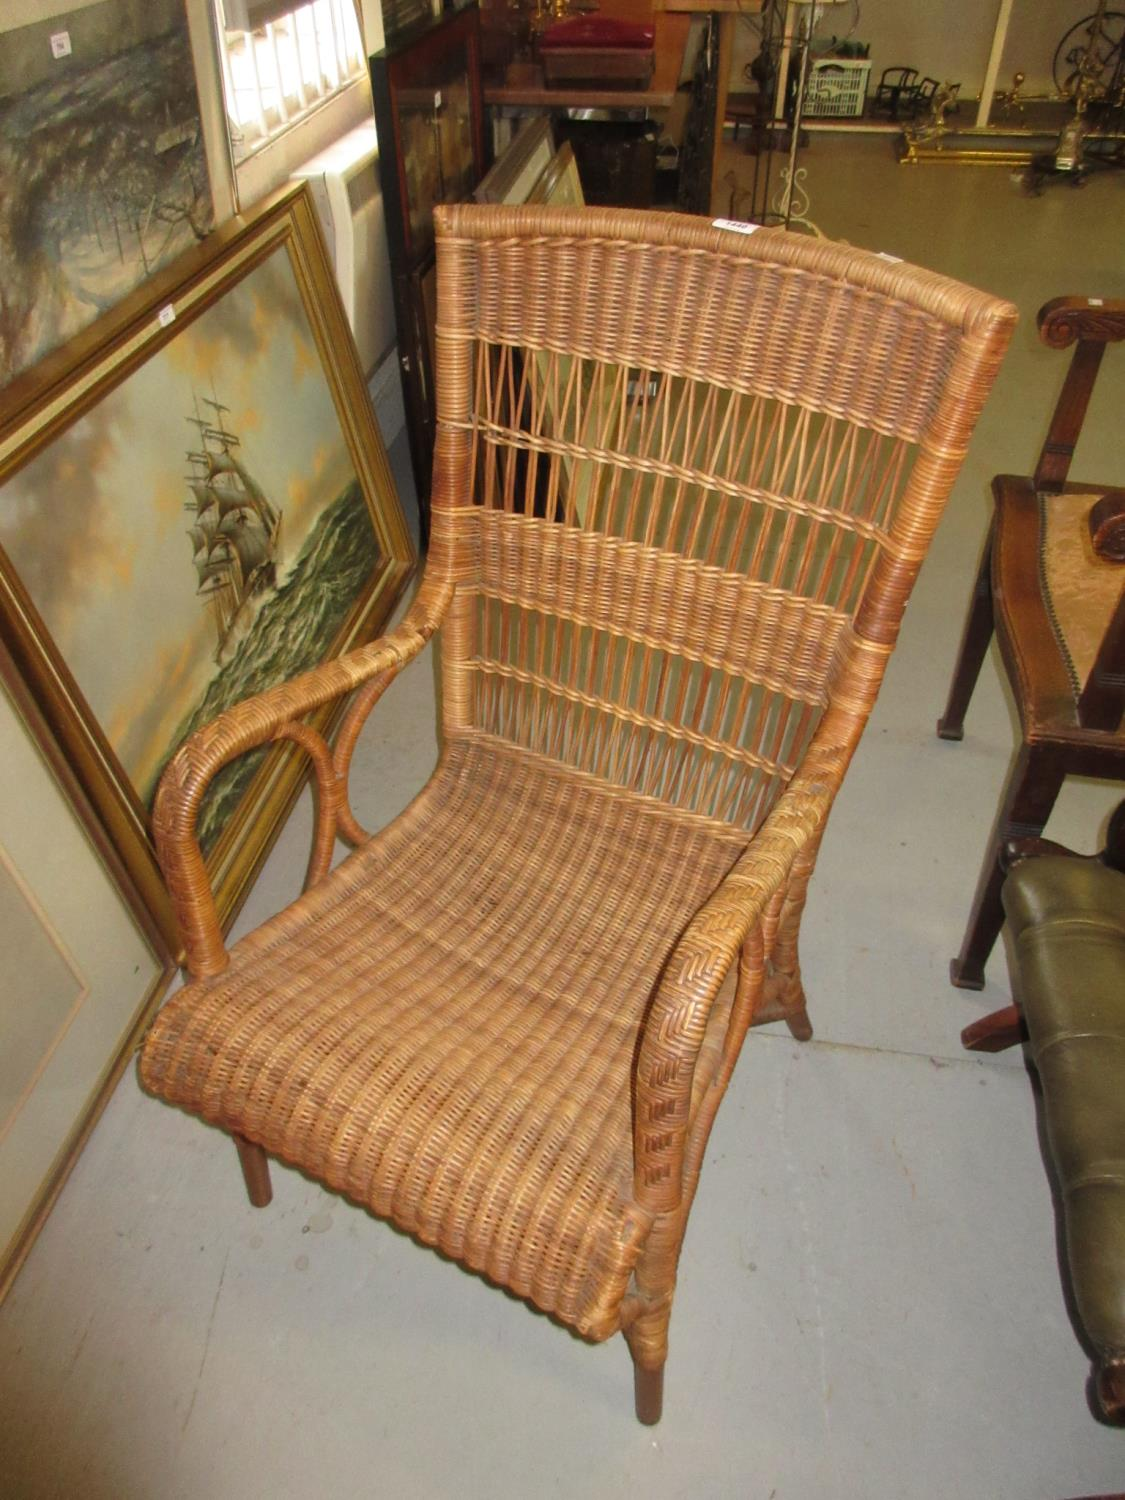 Wicker arm chair by Dryad of Leicester, with original label to the seat frame